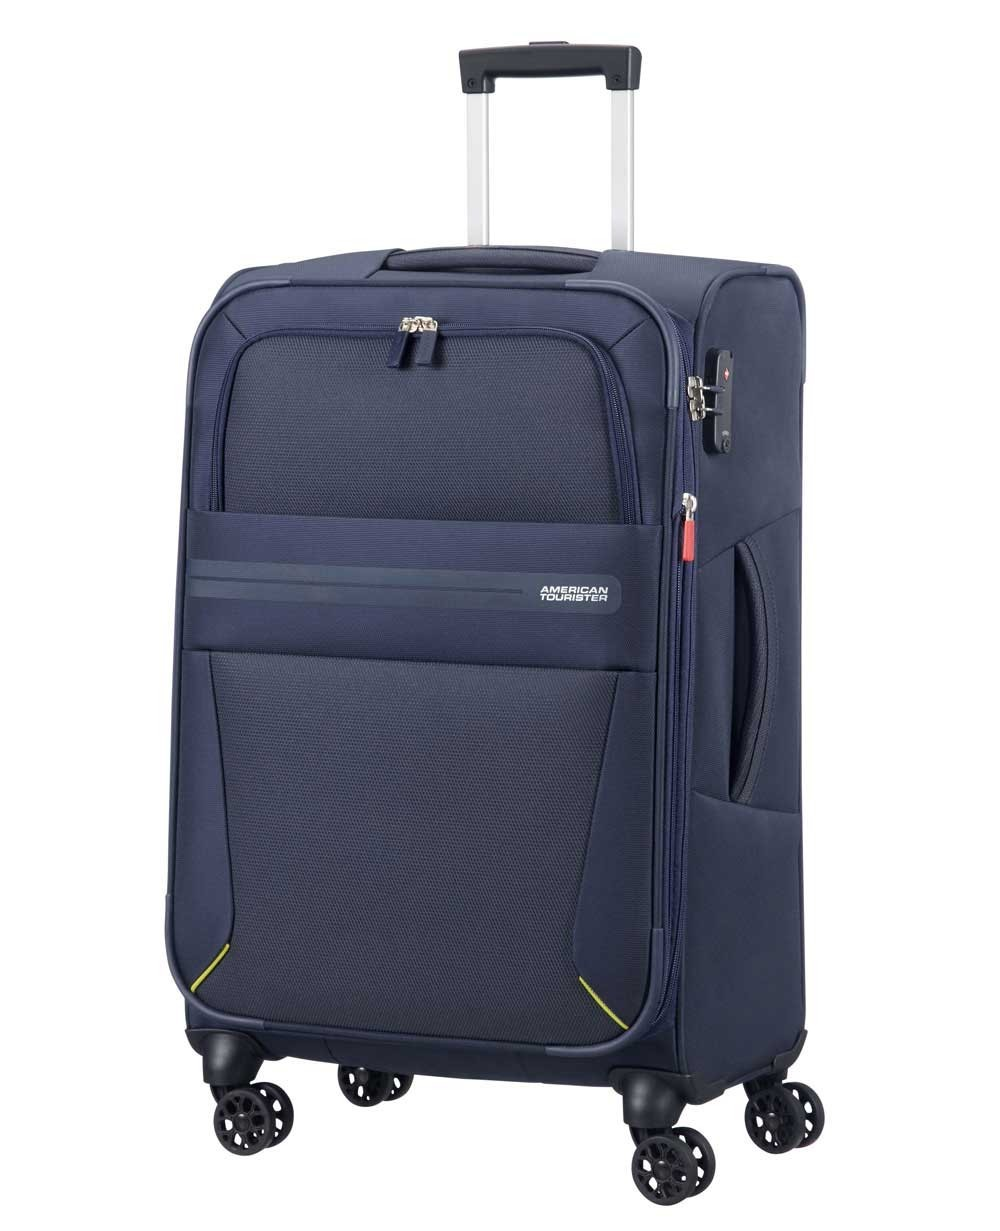 American Tourister Summer Voyager Maleta mediana Azul (Foto )